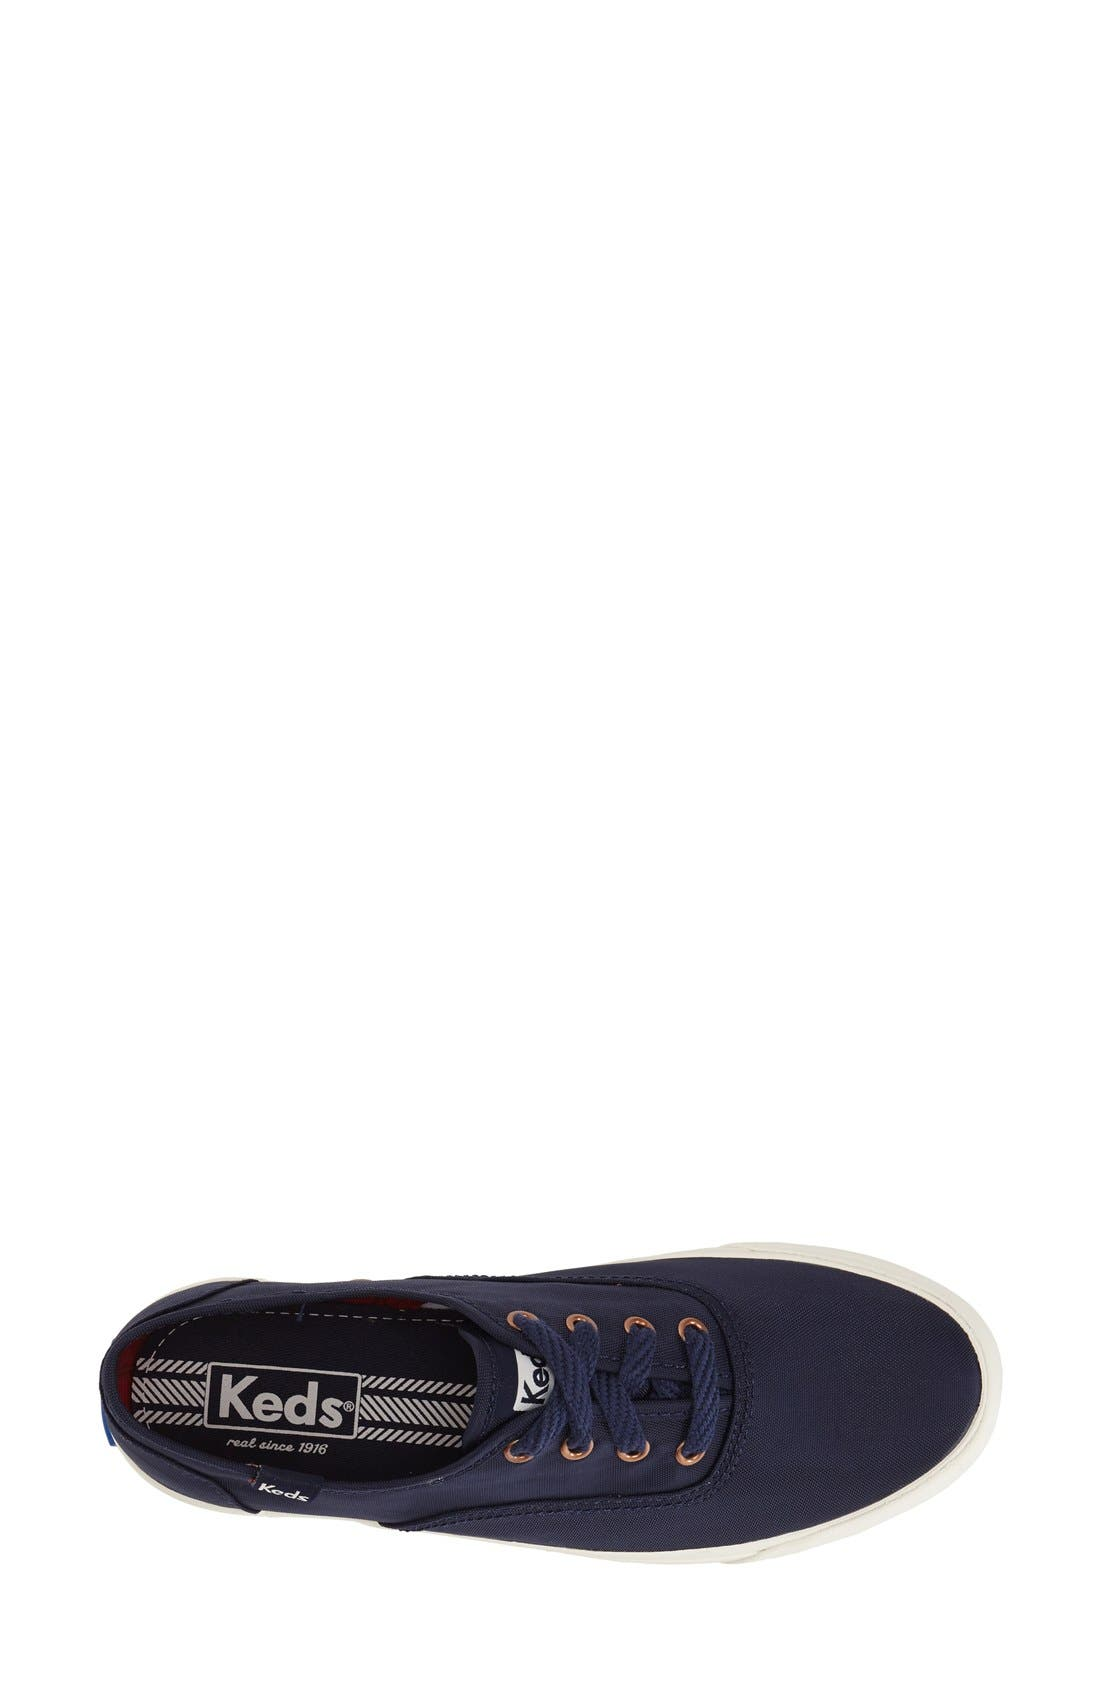 Alternate Image 3  - Keds® 'Triumph' Sneaker (Women)